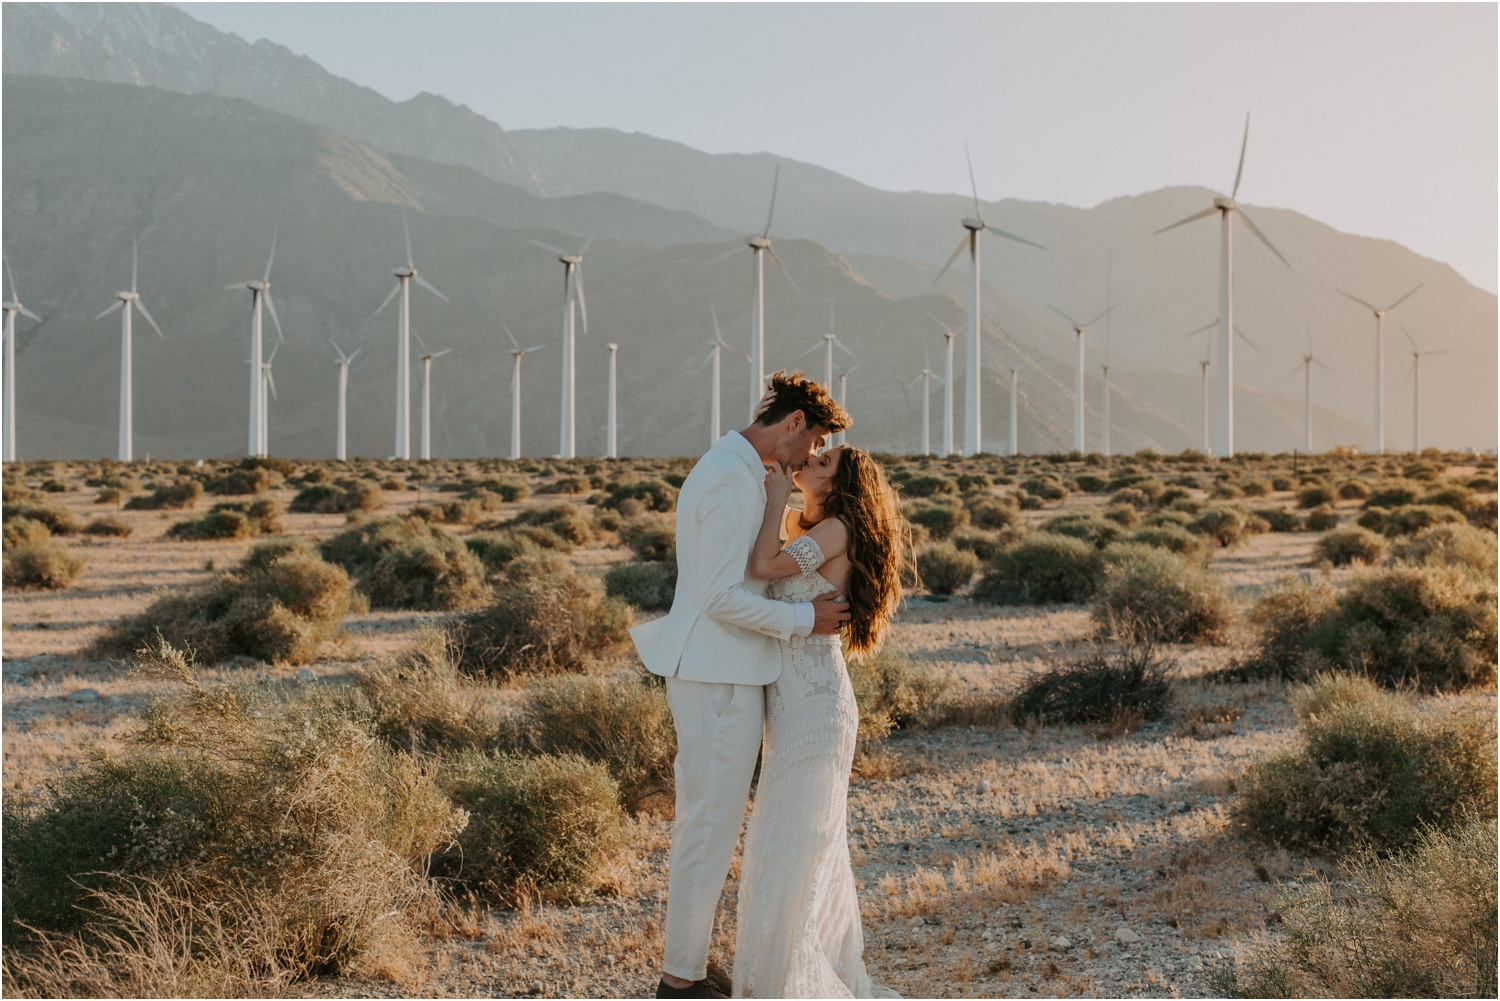 Palm Springs Elopement | Stephanie + Nick | Courtney Jess Photography | Kimberley British Columbia Elopement Photographer.jpeg